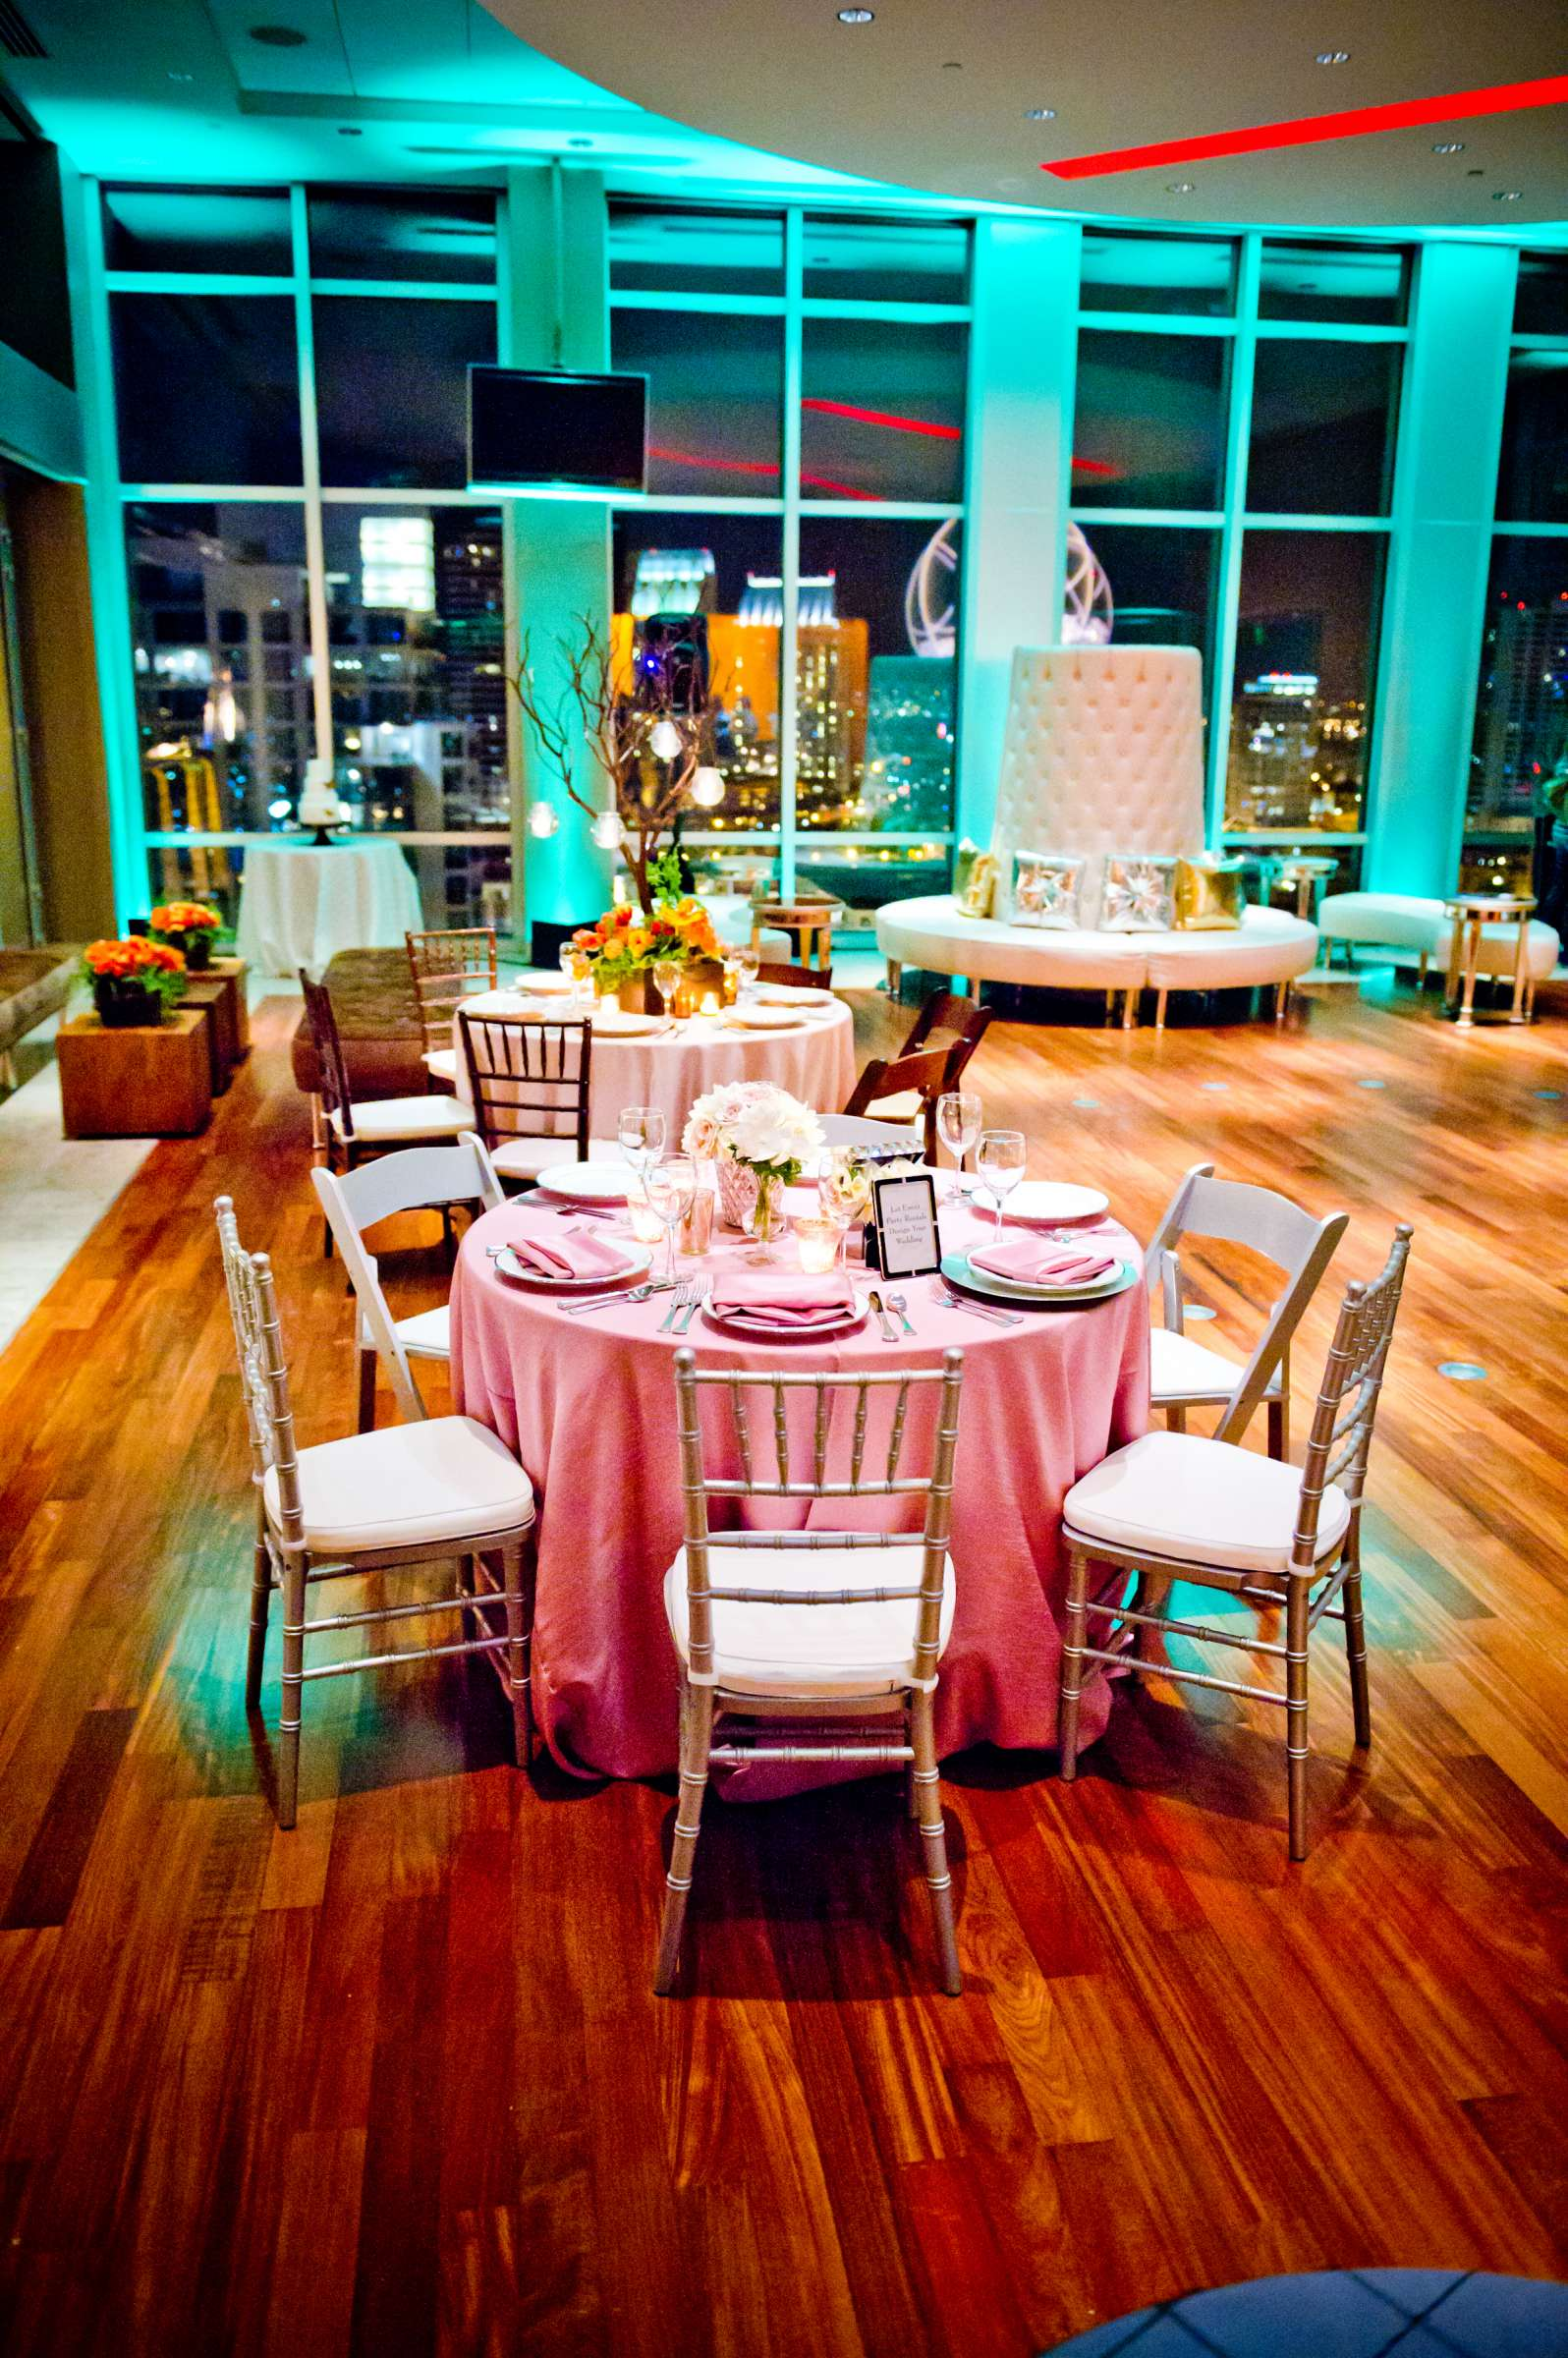 Ultimate Skybox Wedding coordinated by Creative Affairs Inc, Open House Wedding Photo #48 by True Photography